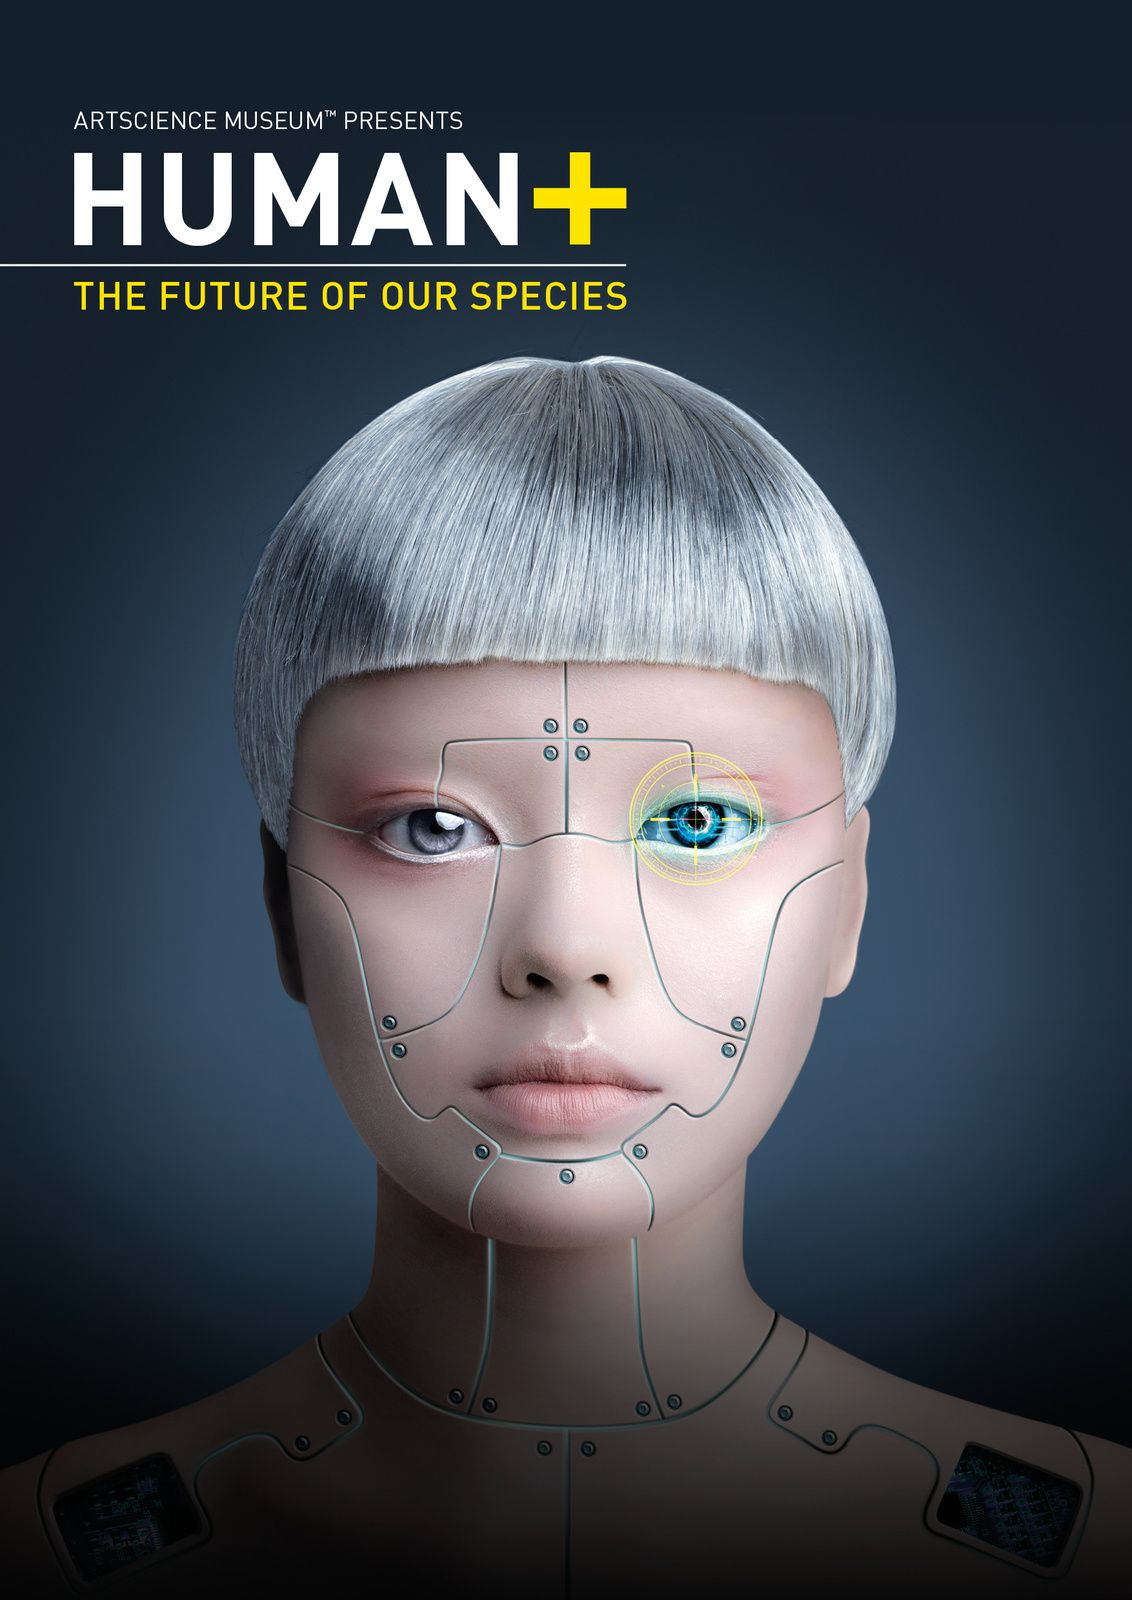 human+. the future of our species